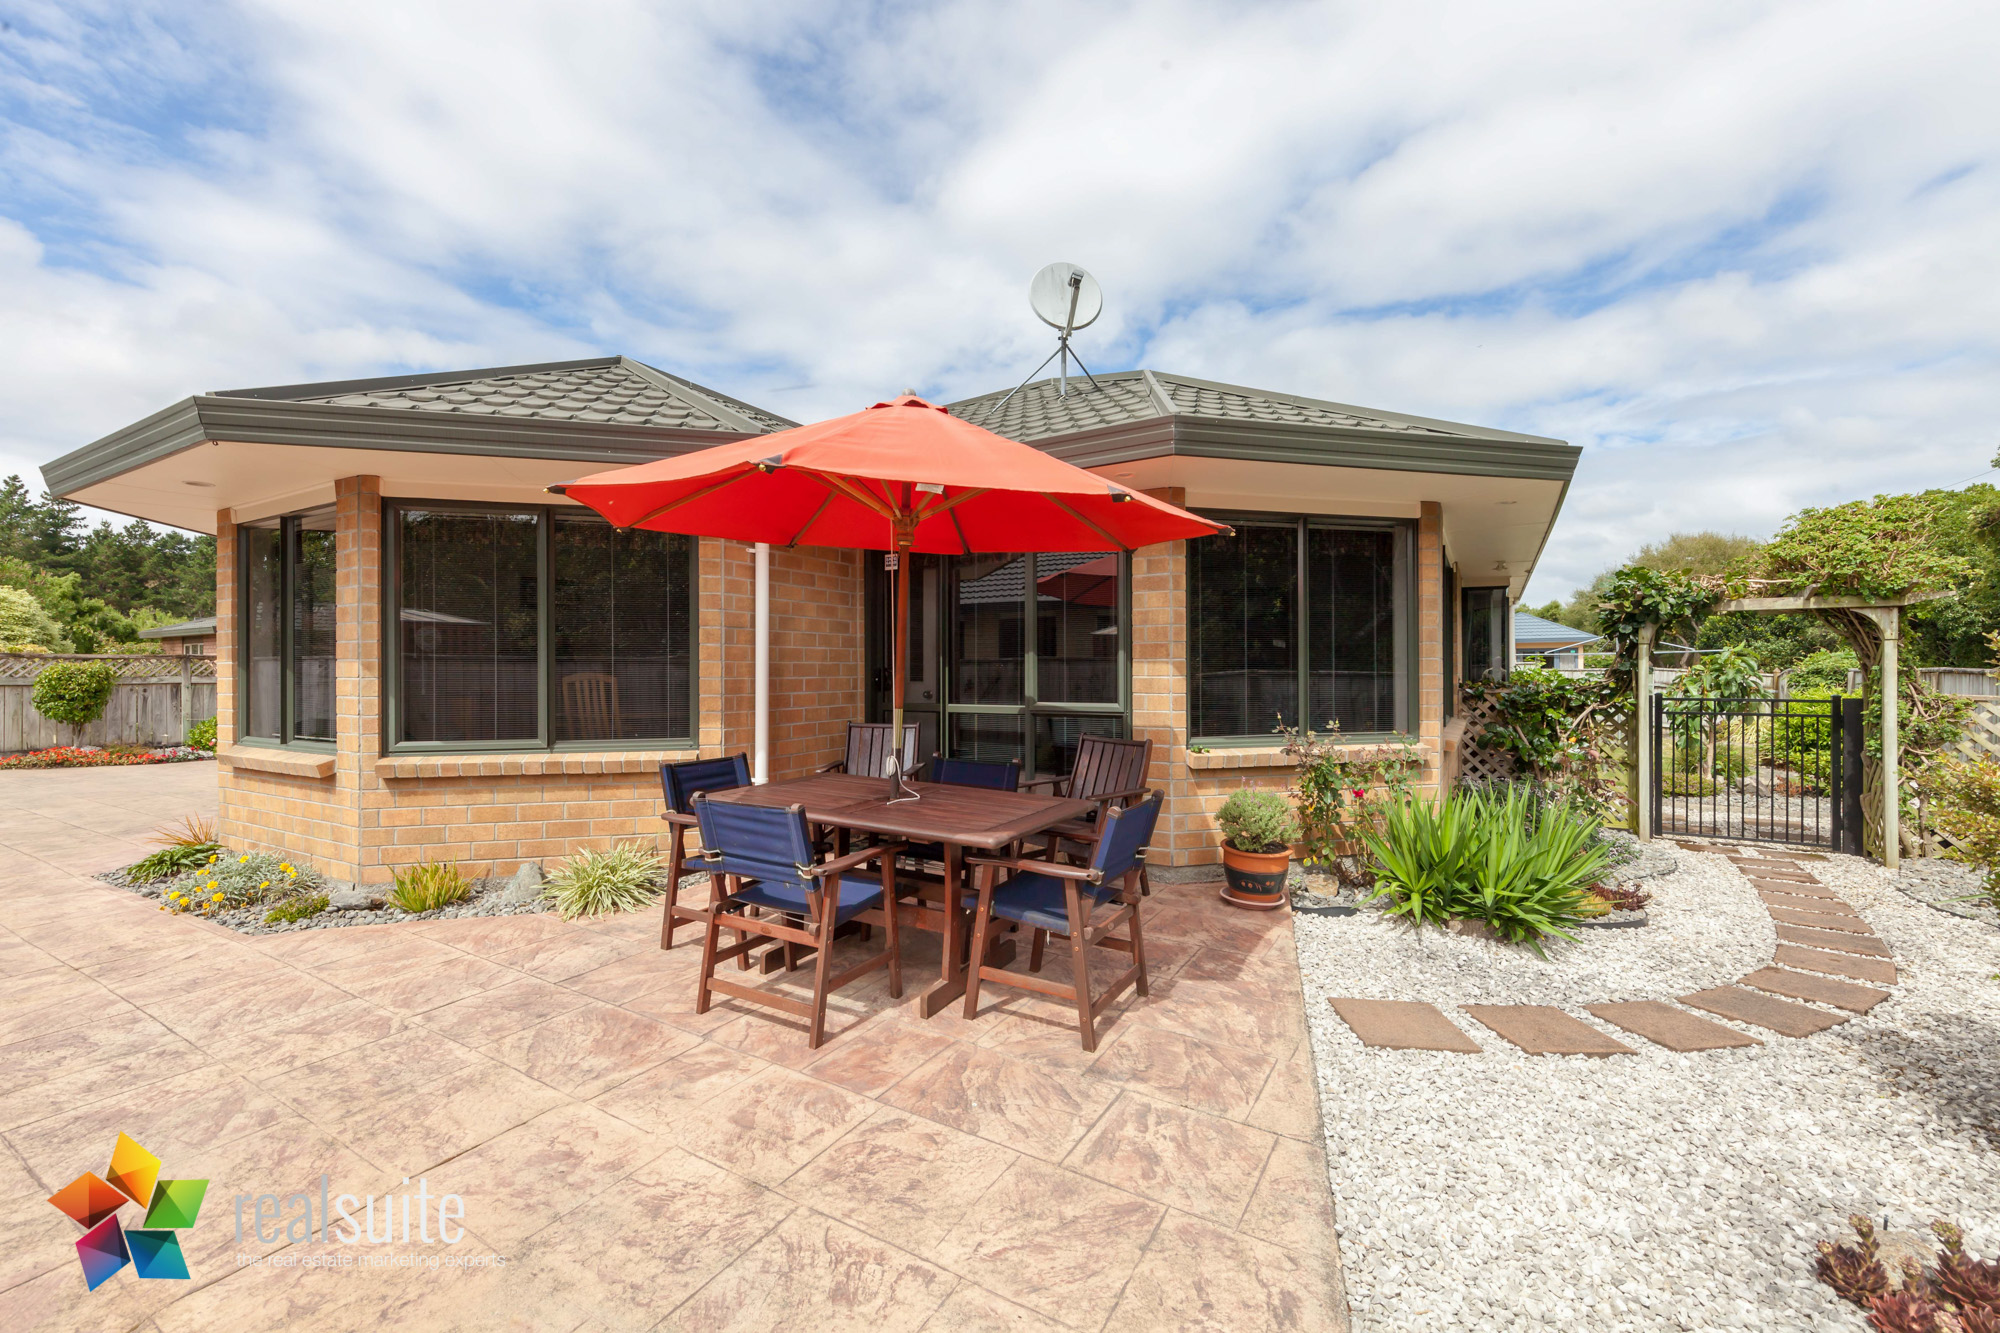 43 Maryhuse Grove, Manor Park 8453